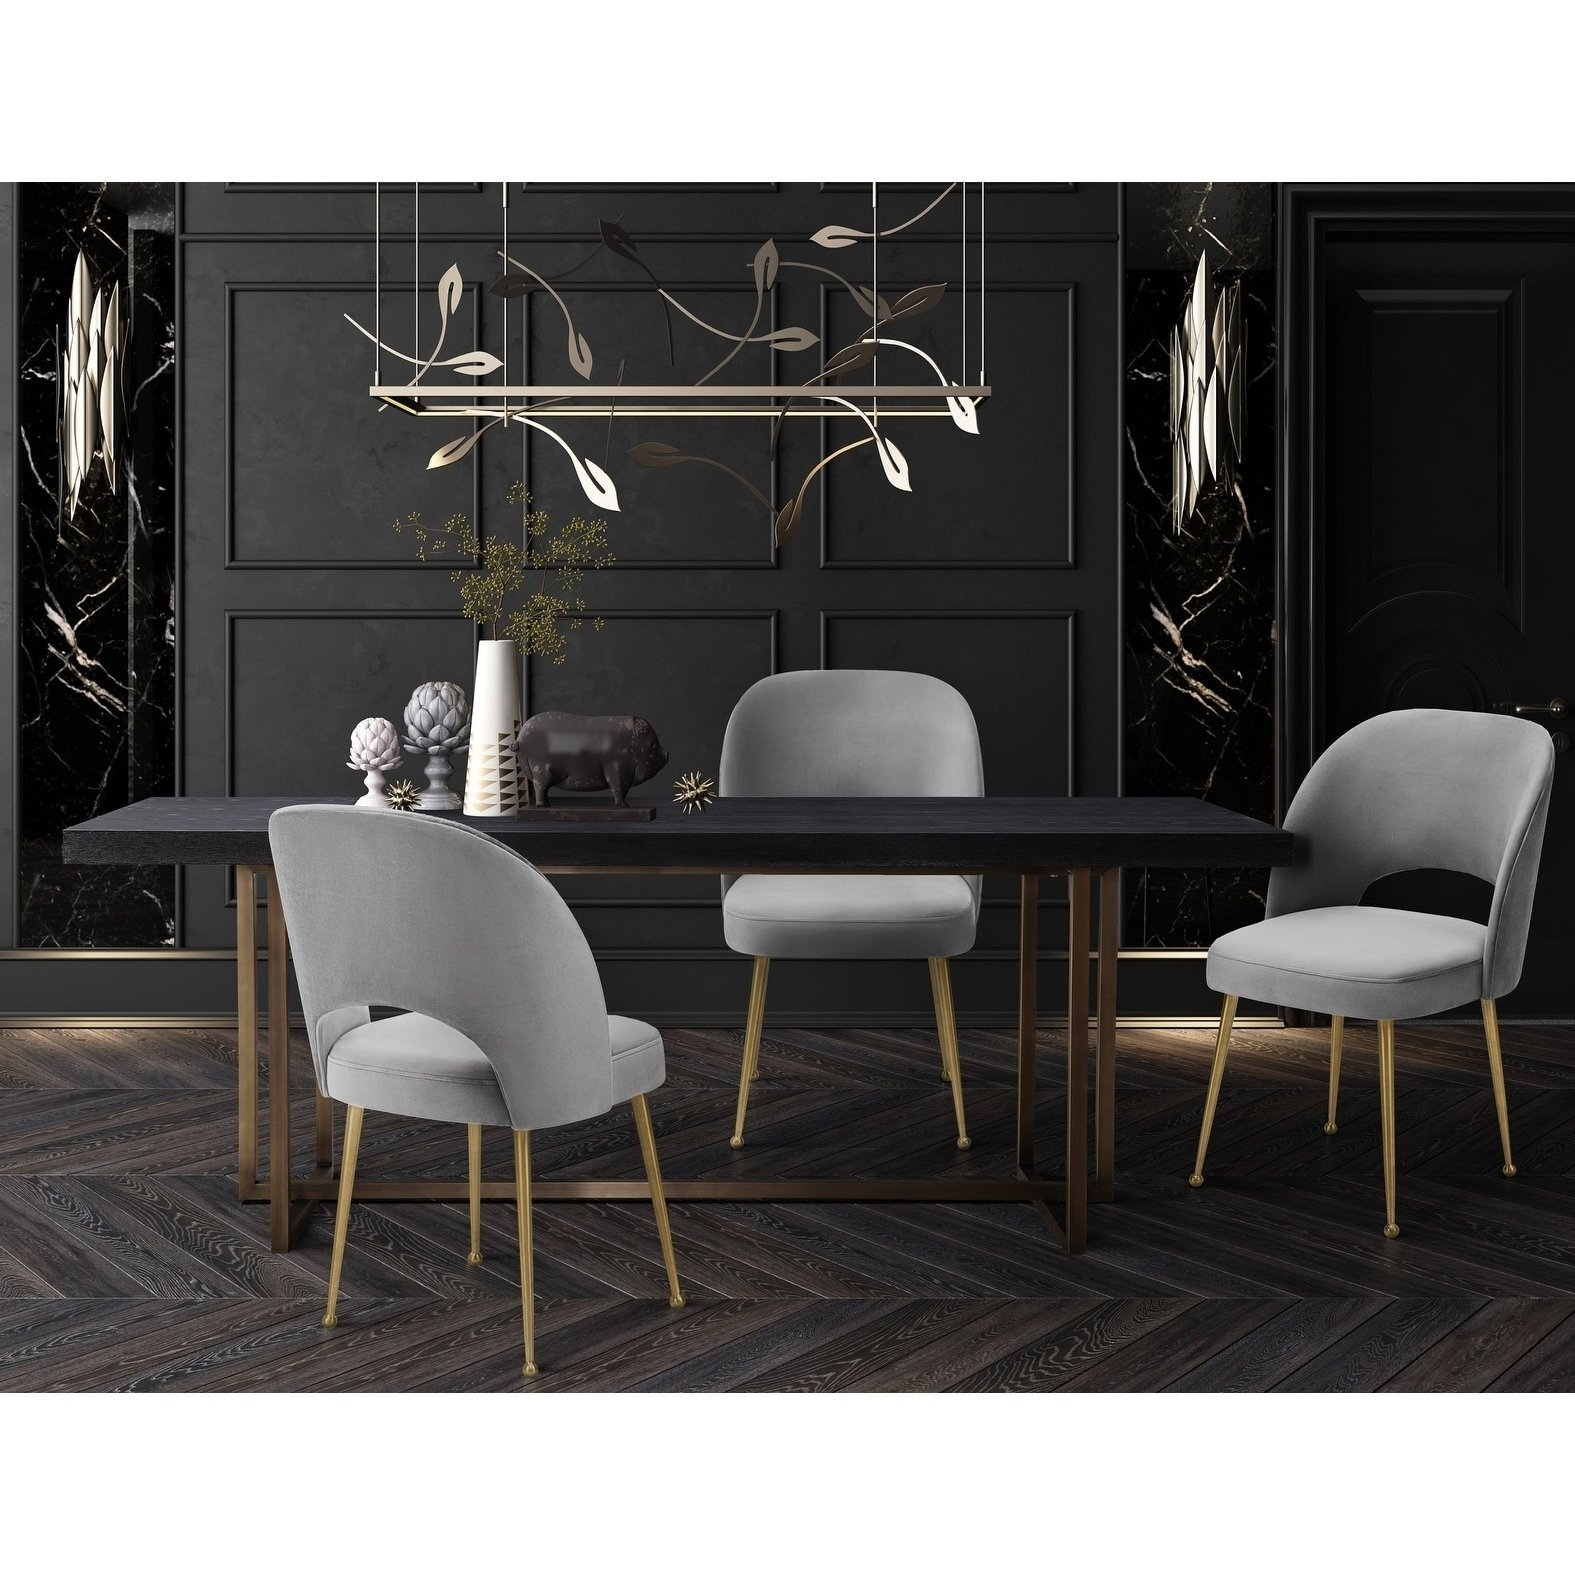 Trendy Shop Swell Light Grey Velvet Chair – Free Shipping Today – Overstock With Regard To Pilo Grey Side Chairs (View 6 of 20)